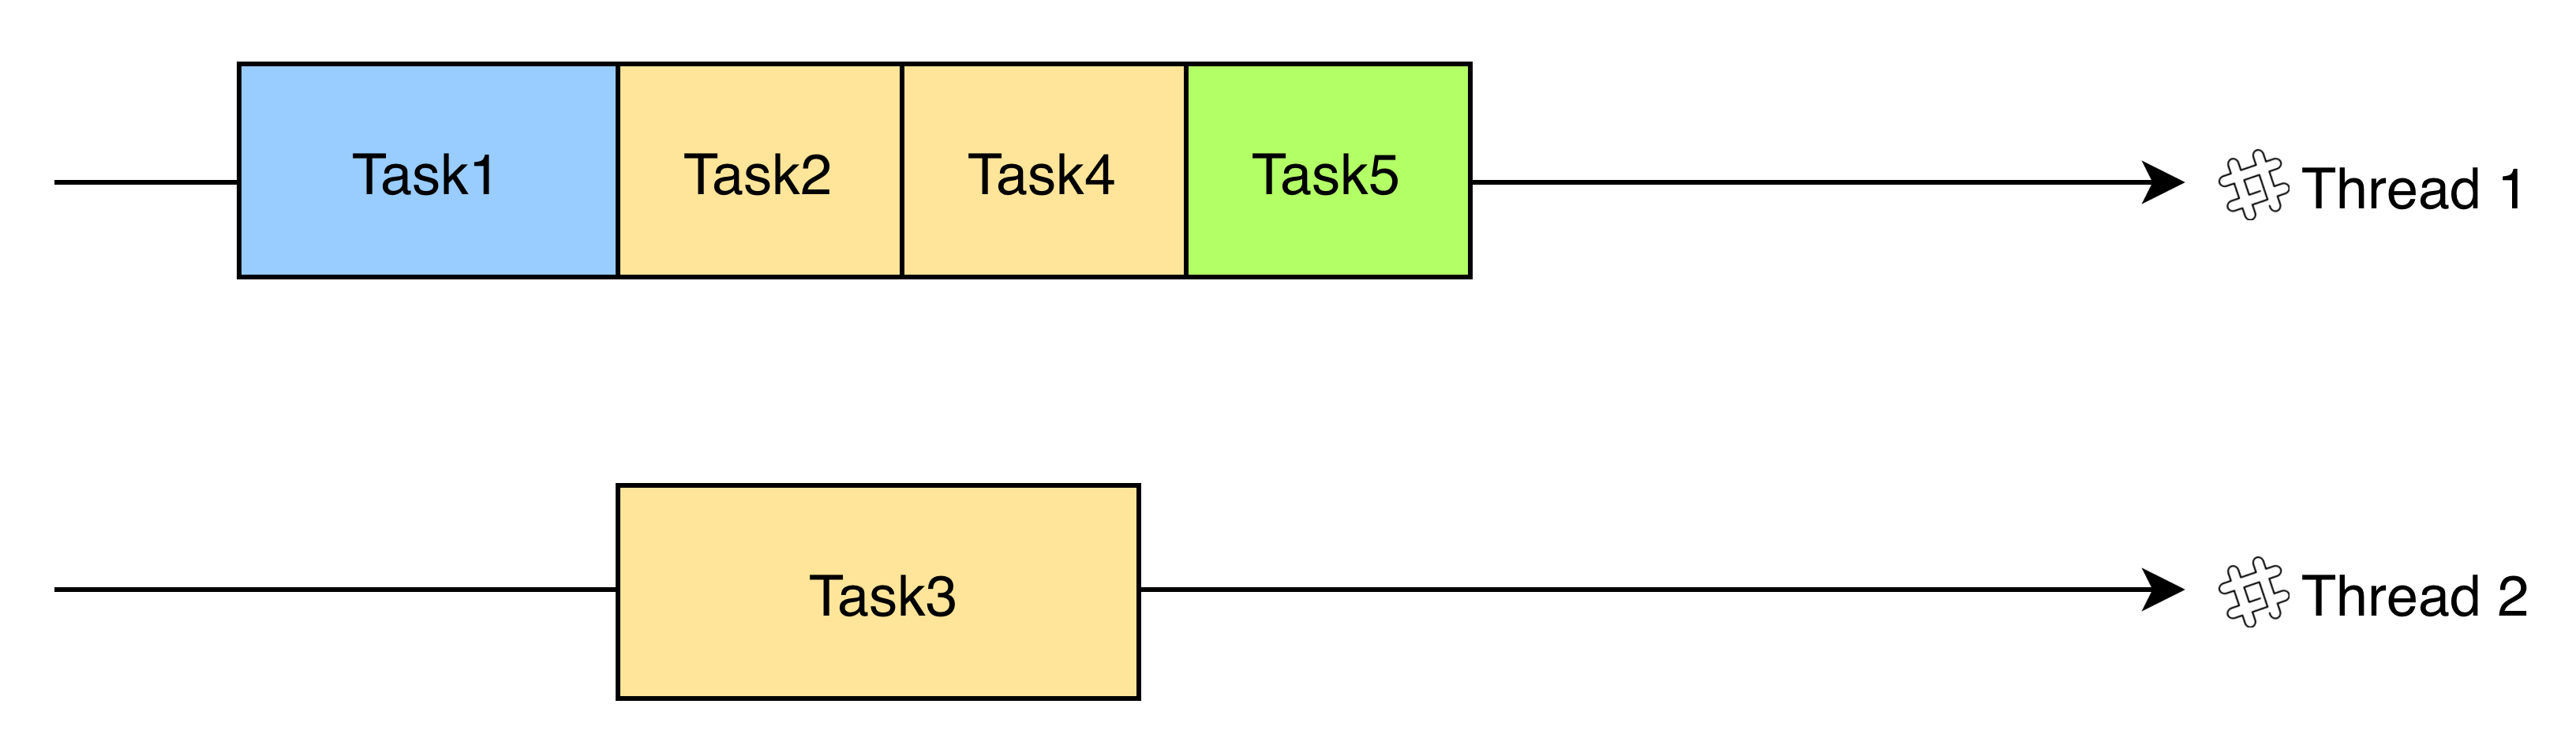 Paralellized Task Diagram